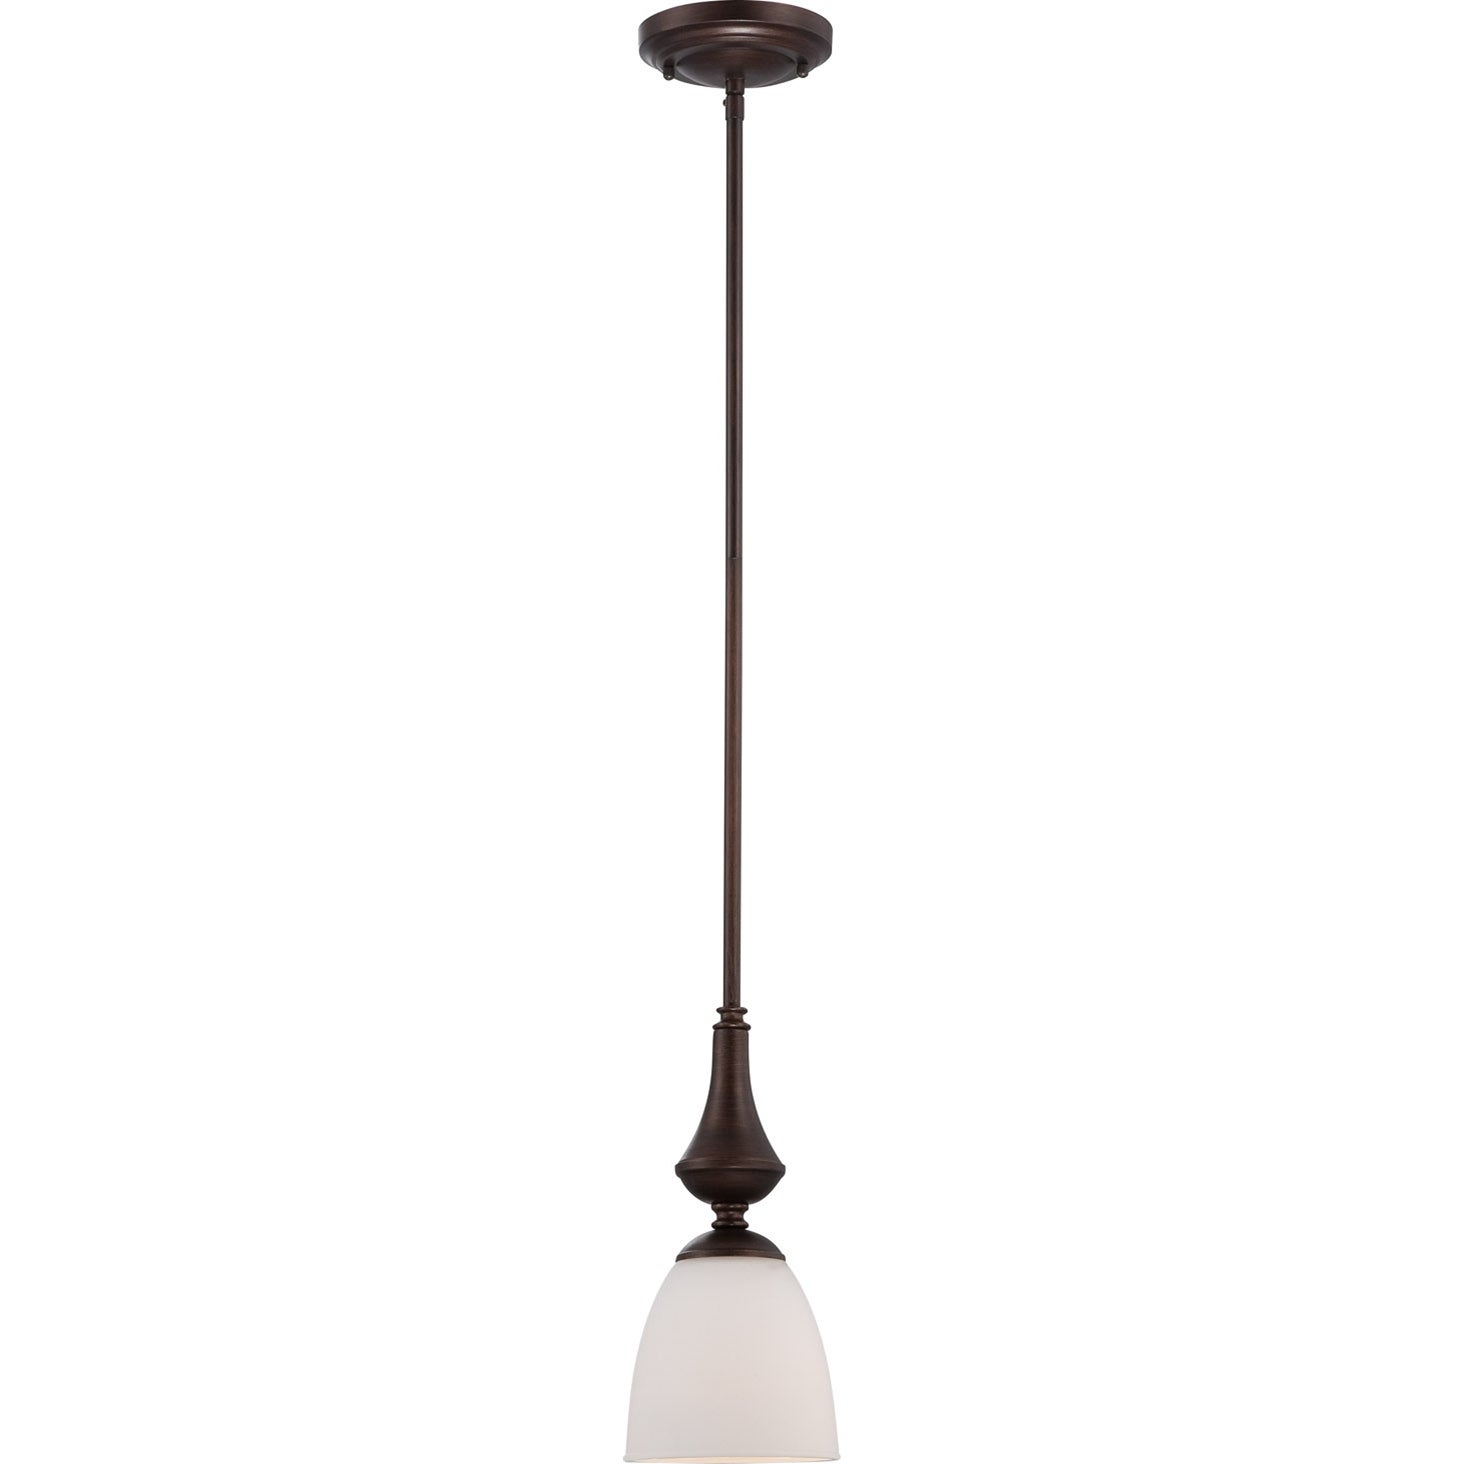 Nuvo Patton 1-light Prairie Bronze Mini Pendant